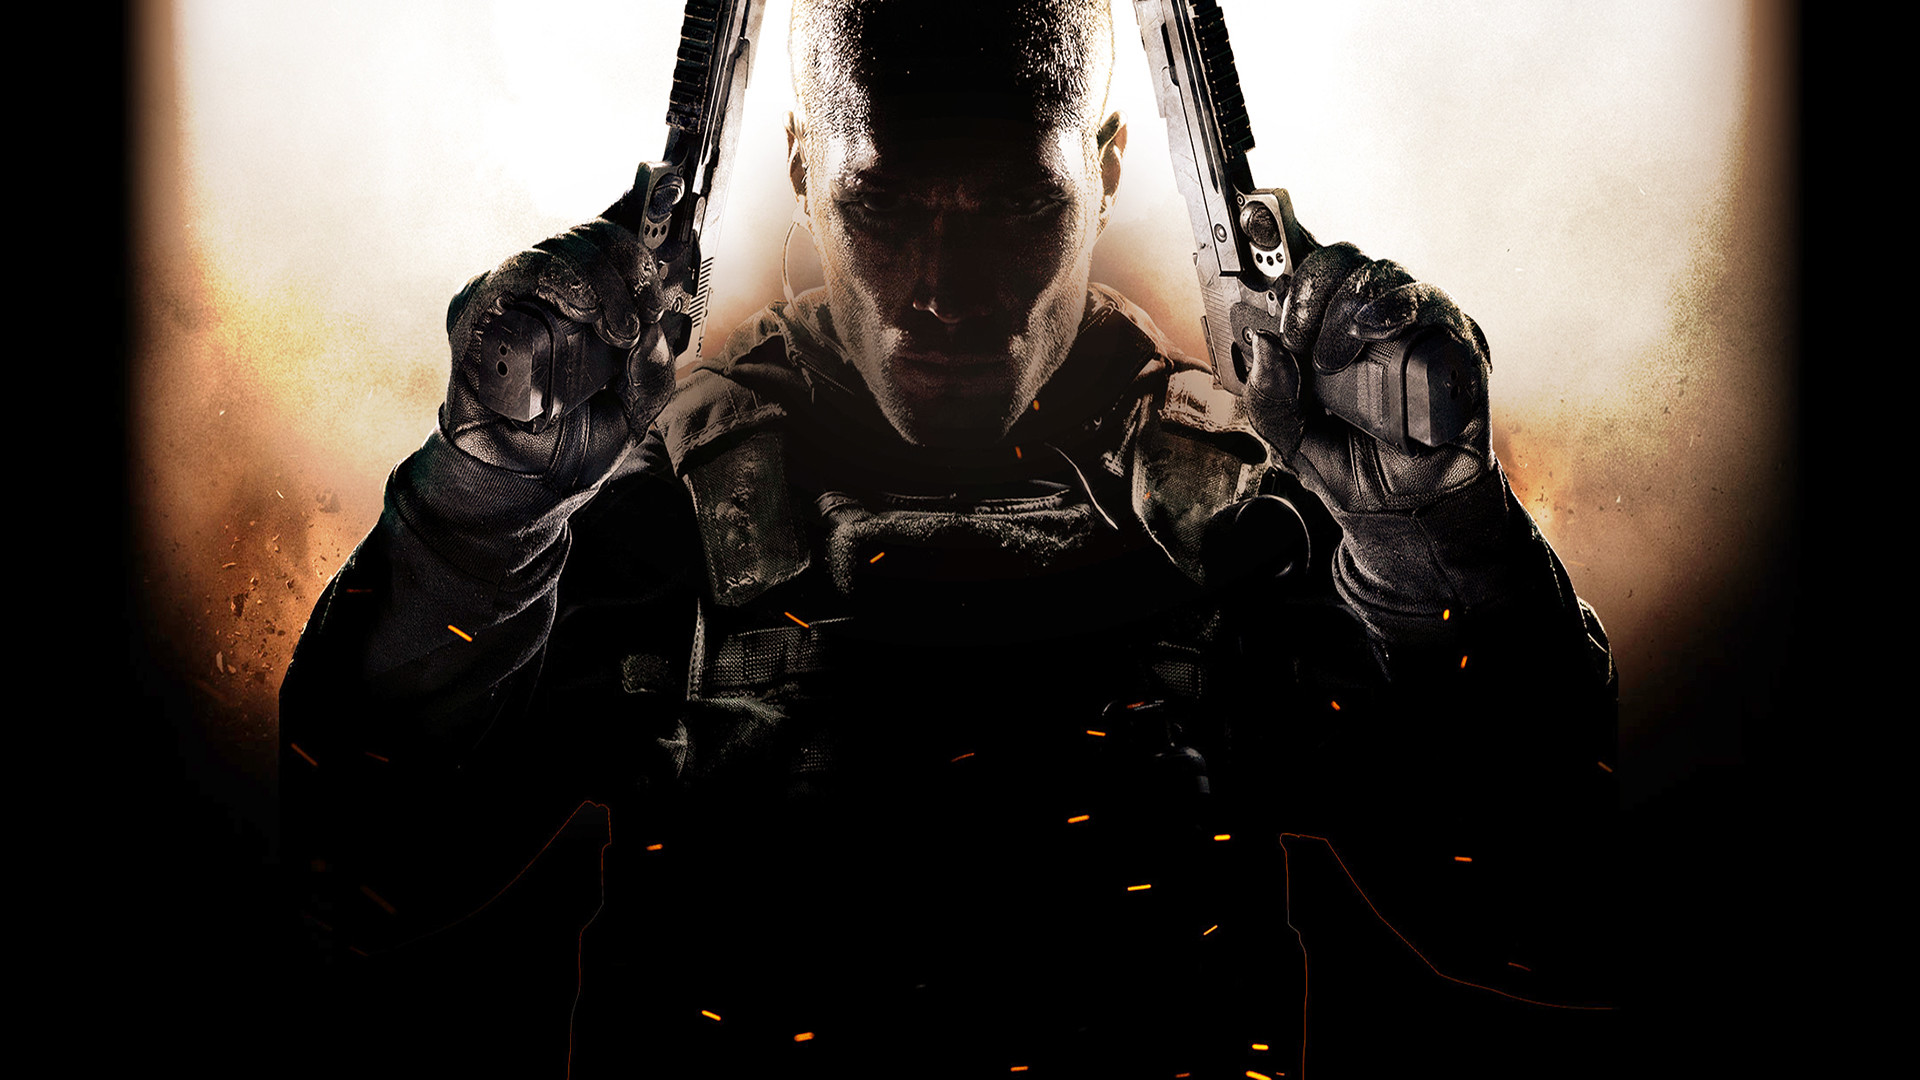 Cod Black Ops 2 Wallpapers 80 Images